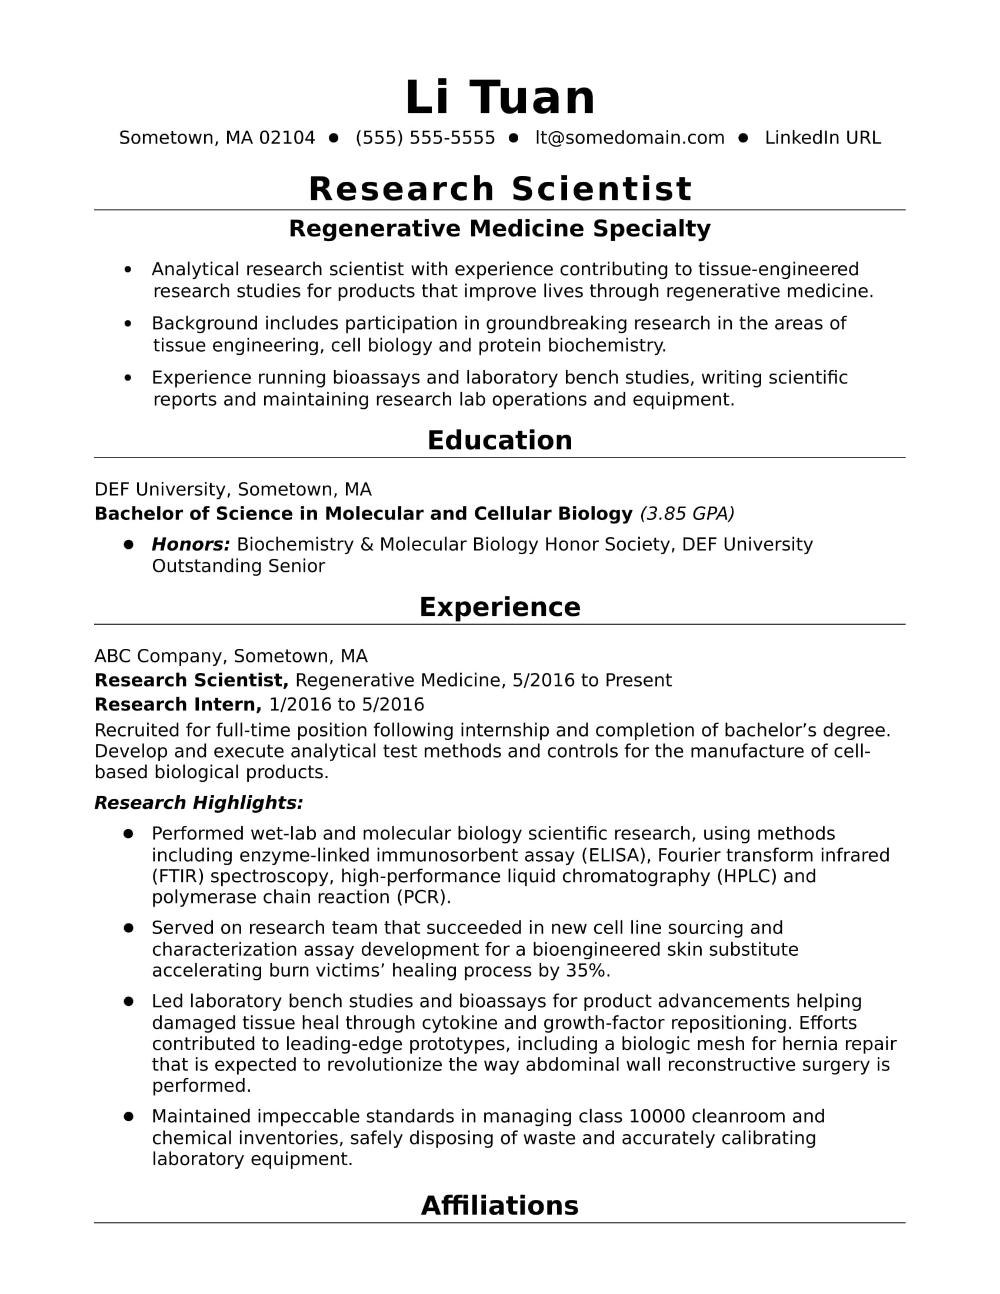 This Sample Resume For An Entry Level Research Scientist Shows How To Emphasize Educational Credentials And Relevant Experience In 2021 Research Scientist Resume Examples Job Resume Examples